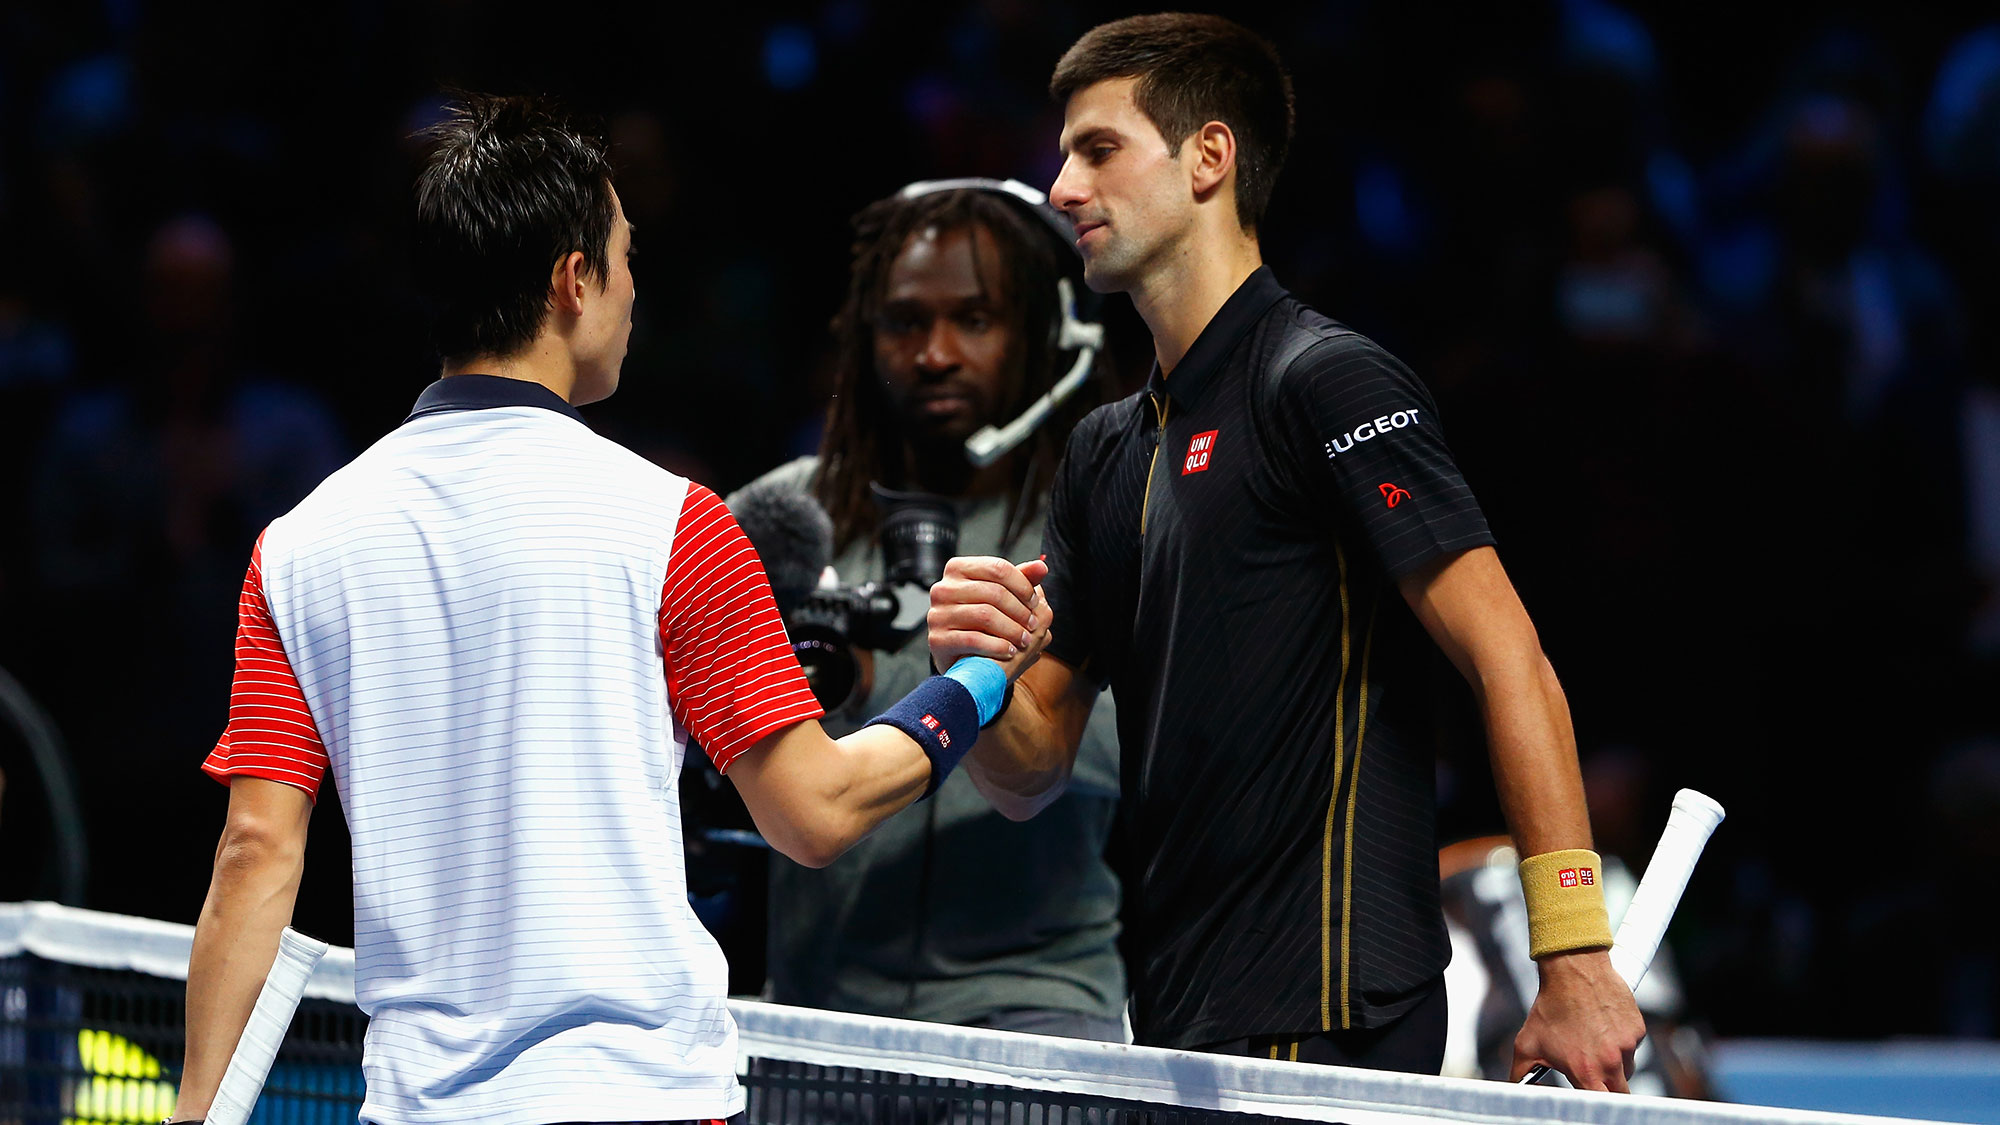 novak djokovic vs kei nishikori after gael monfils win at rogers cup 2016 images